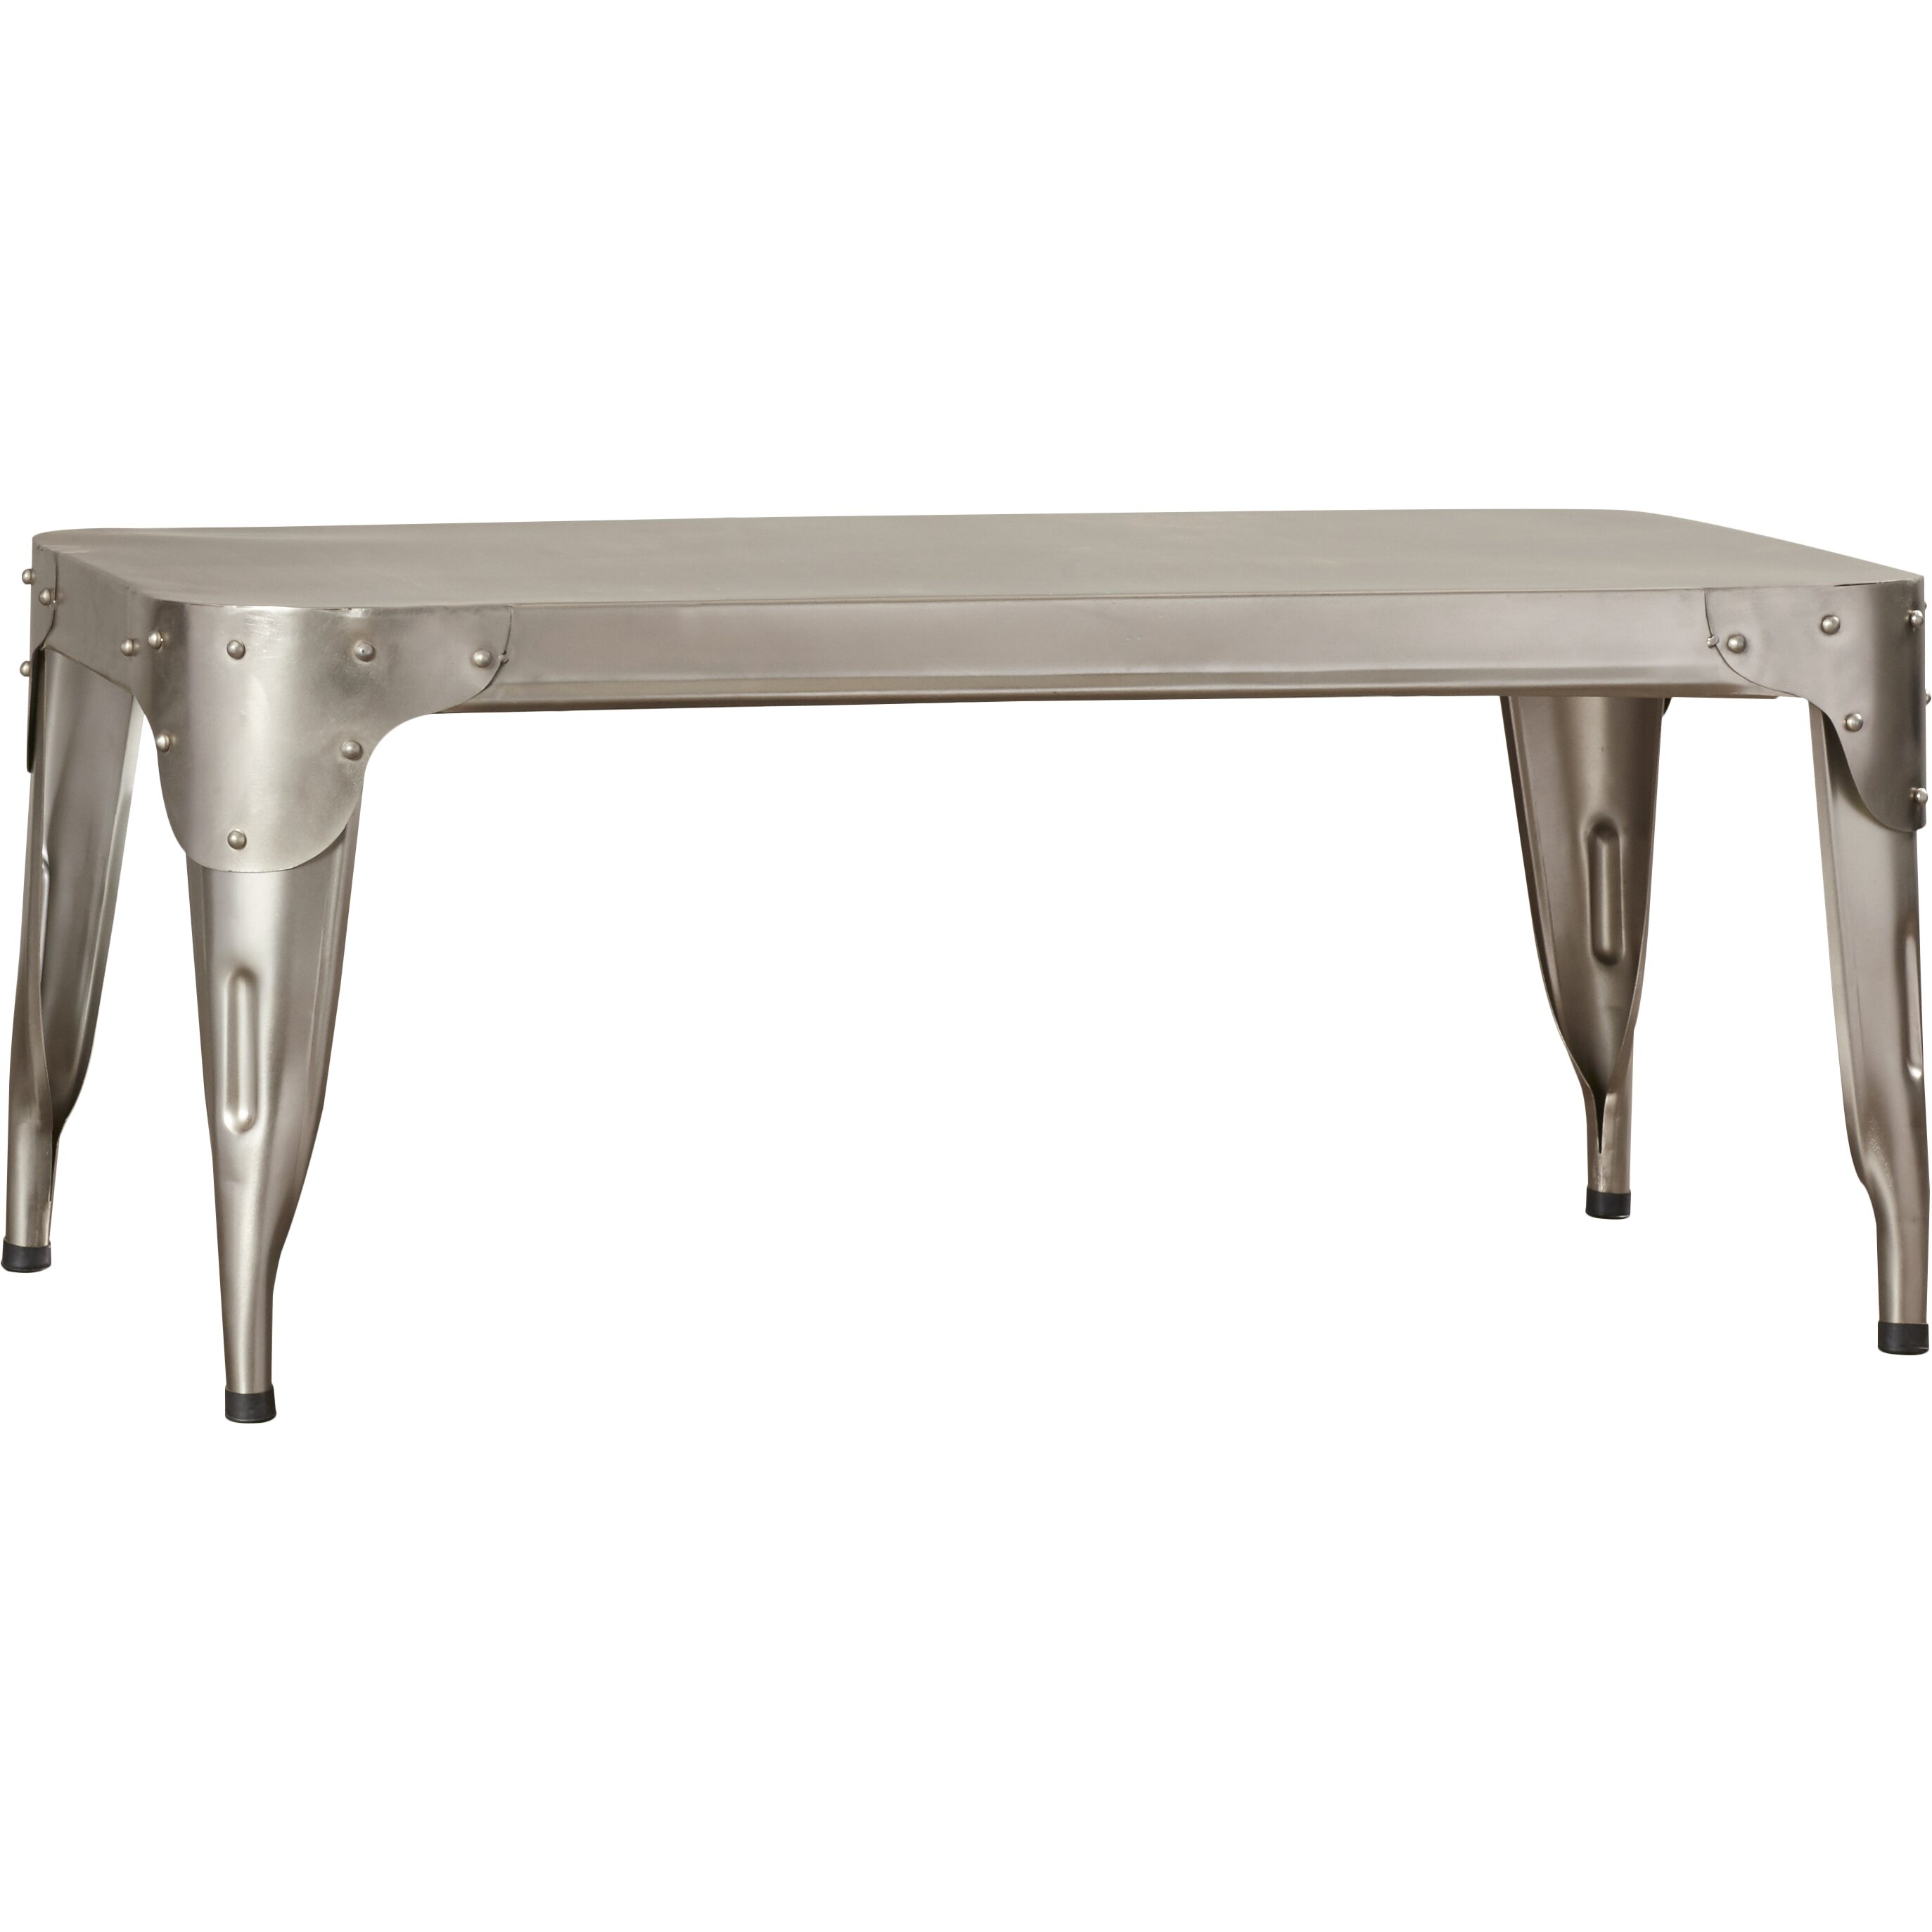 Safavieh Fox Classic Coffee Table Reviews Wayfair Supply